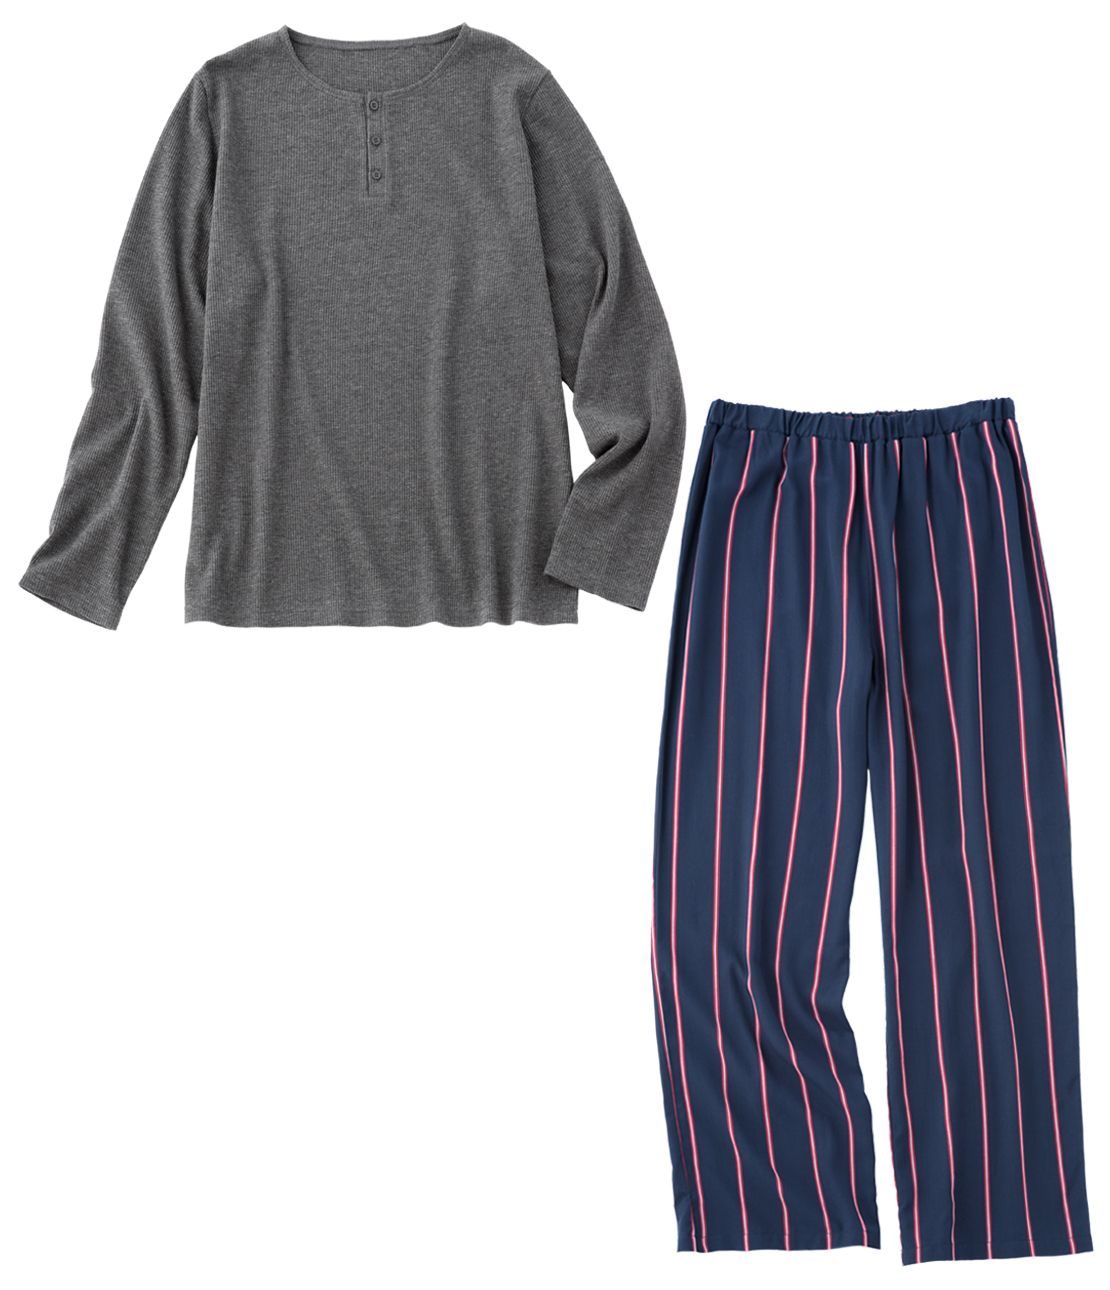 Men's Good Three Pyi pajamas